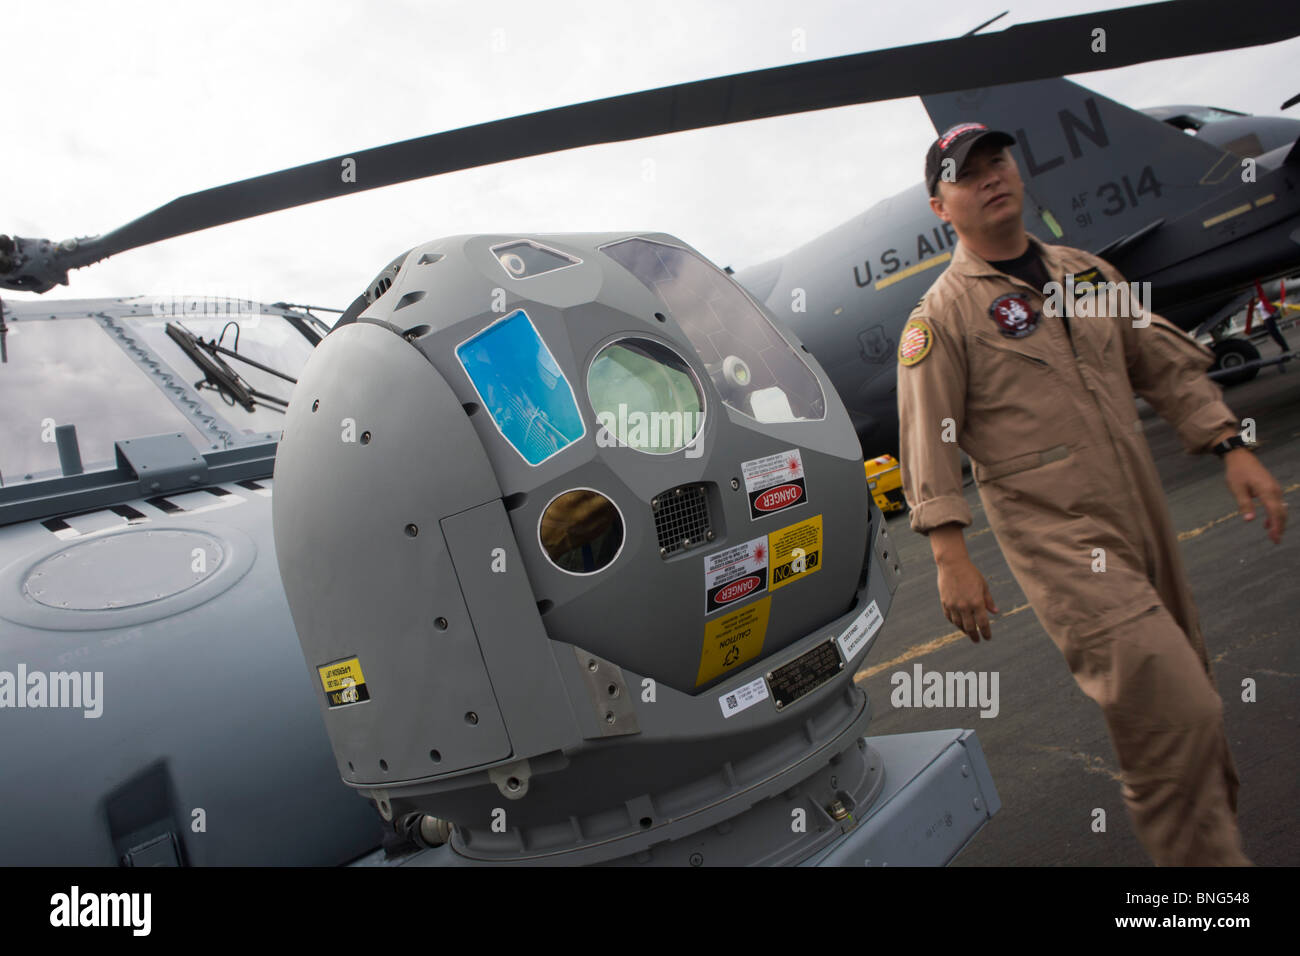 US Navy pilot and infra-red imaging camera on nose of a Sikorsky MH-60R helicopter at the Farnborough Airshow. - Stock Image